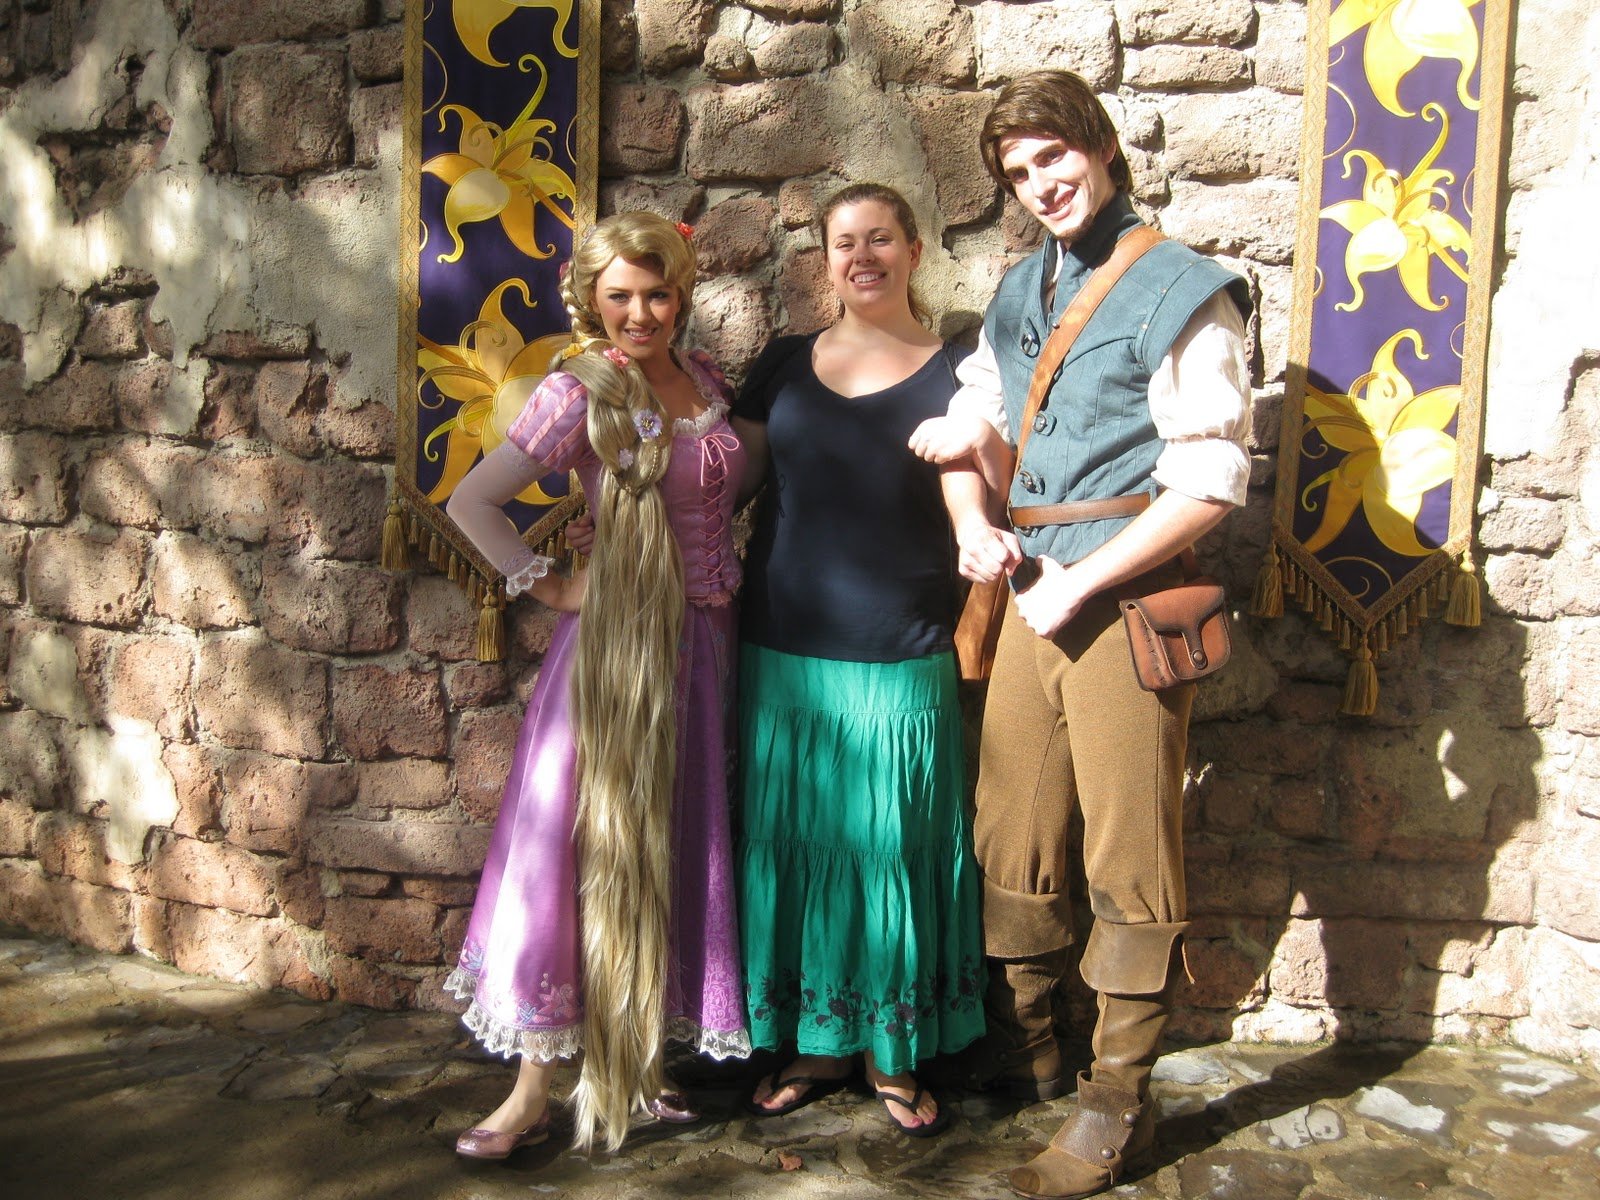 Flynn Rider Disney World Rapunzel and flynn rider Flynn Rider Disney World 2013